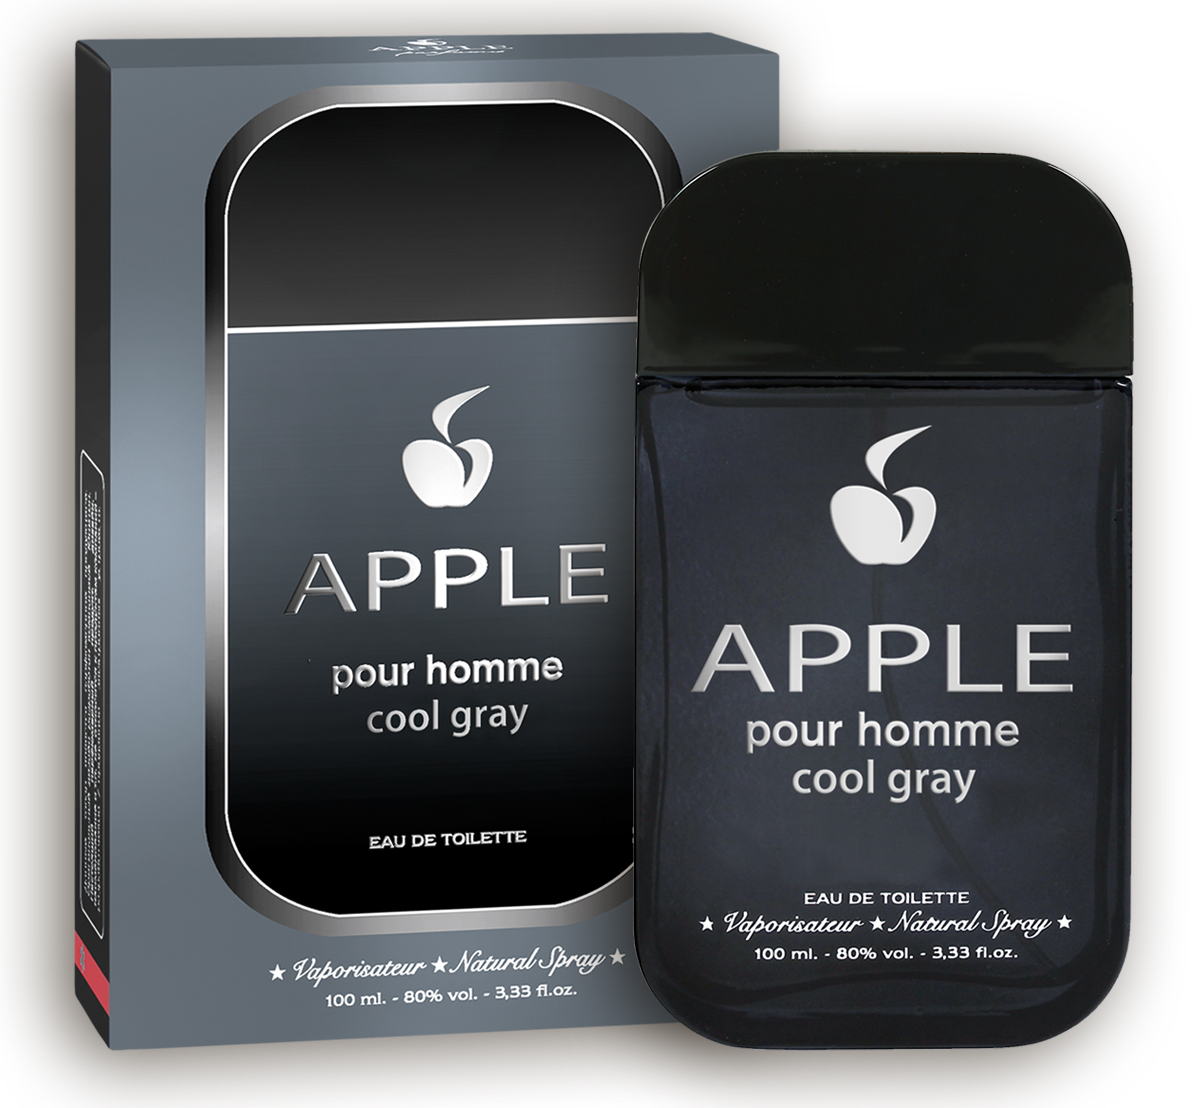 Apple Parfums Homme Cool Gray. Туалетная вода, 100 мл туалетная вода apple parfums эппл пур хомме джаст силвер apple homme just silver